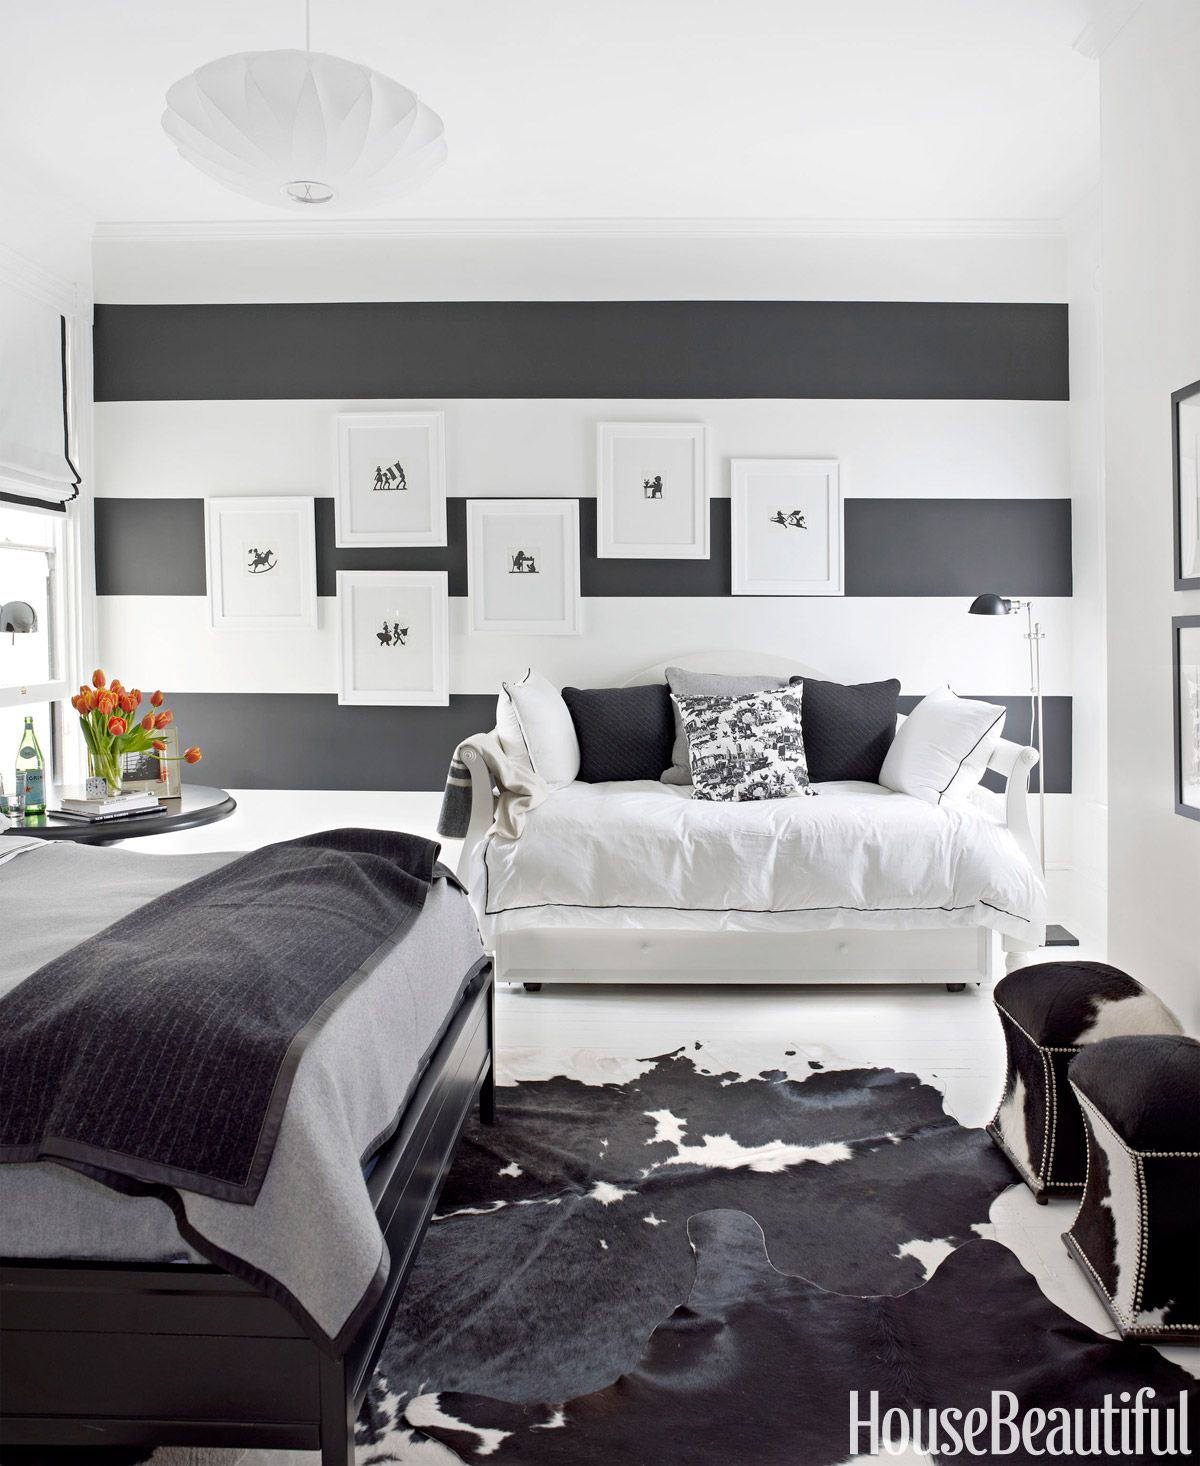 Black and White Designer Rooms - Black and White Decorating Ideas